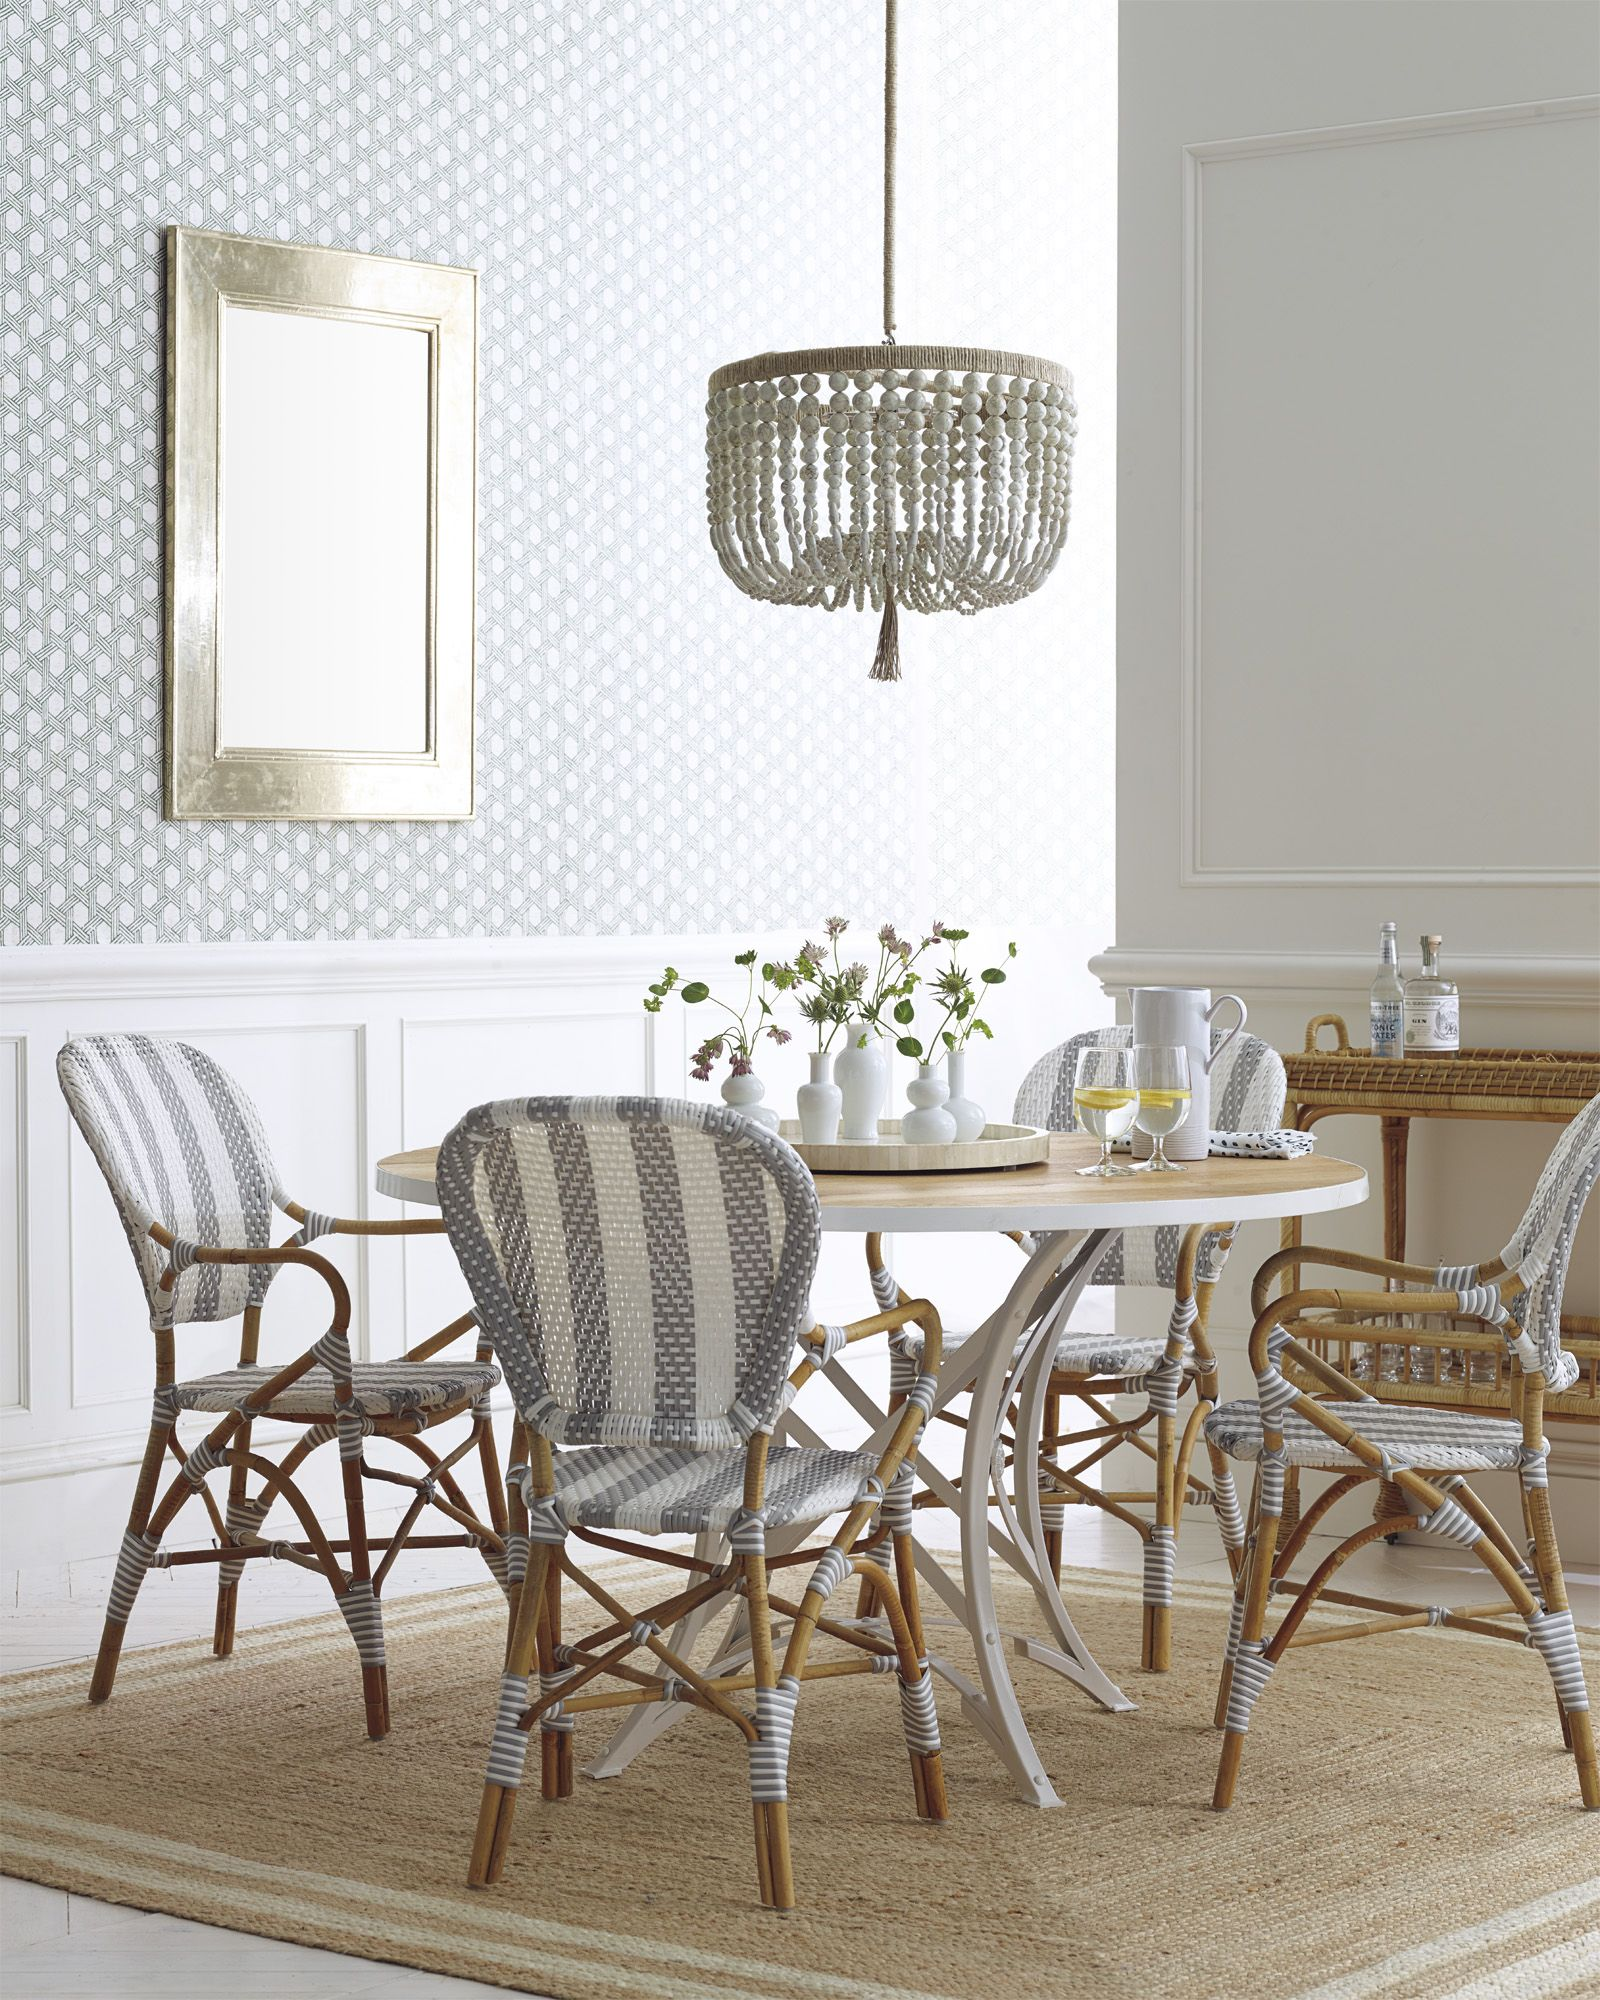 Serena And Lily Cayman Cork Wallpaper Riviera Armchairs Via Serena Lily